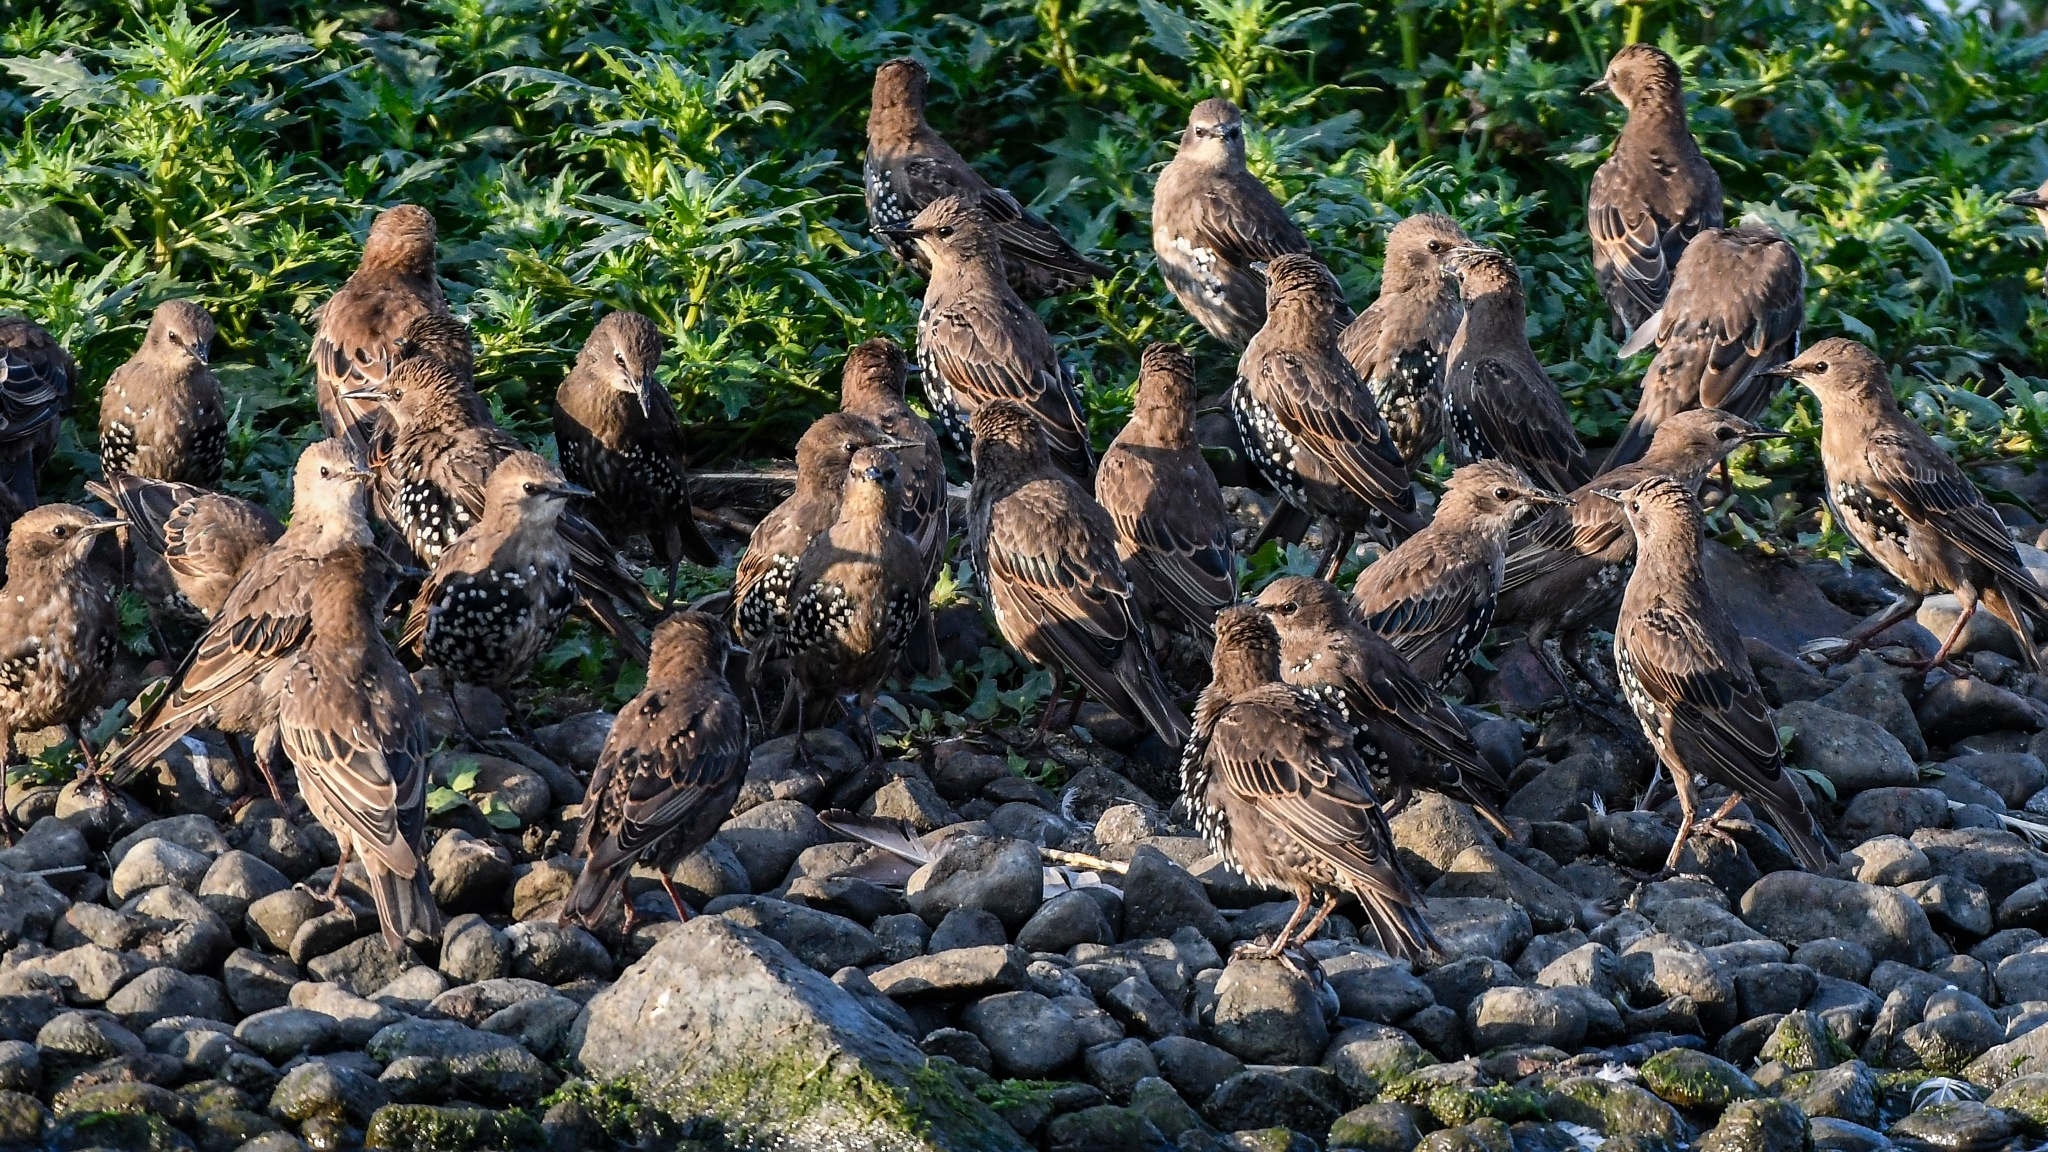 Crowded by Ake Hansson